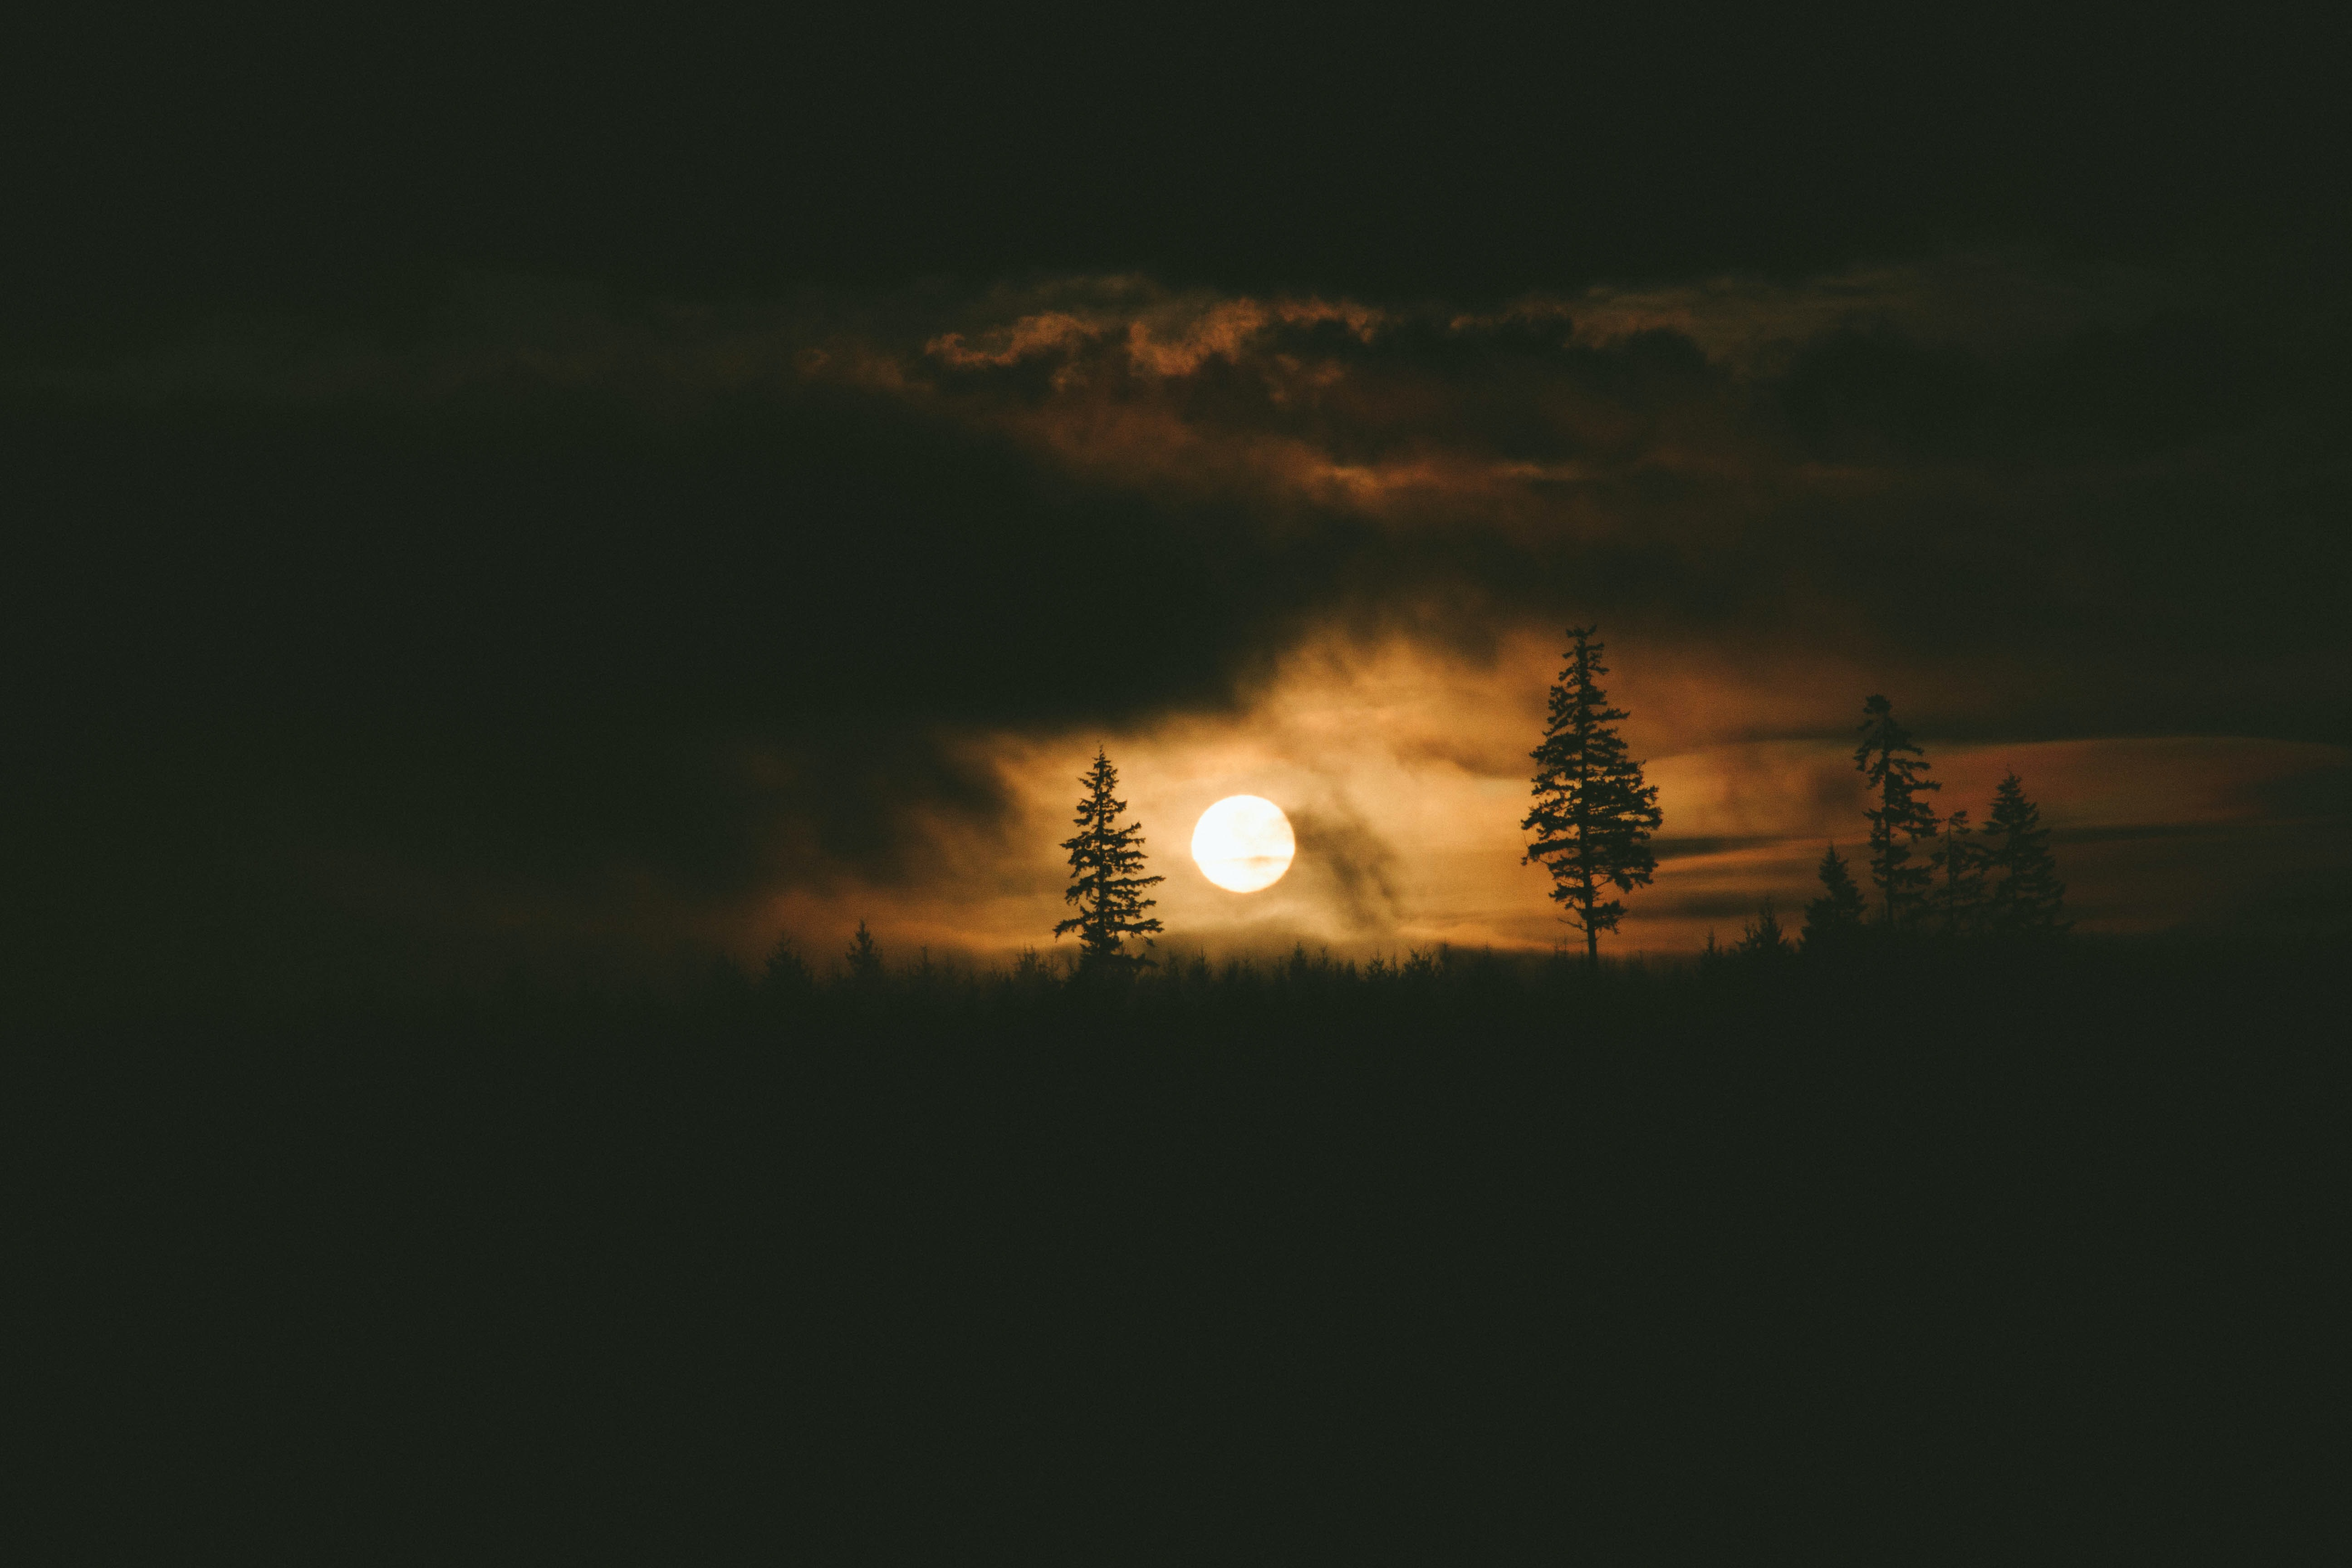 The bright golden sun as seen through silhouetted trees and clouds.